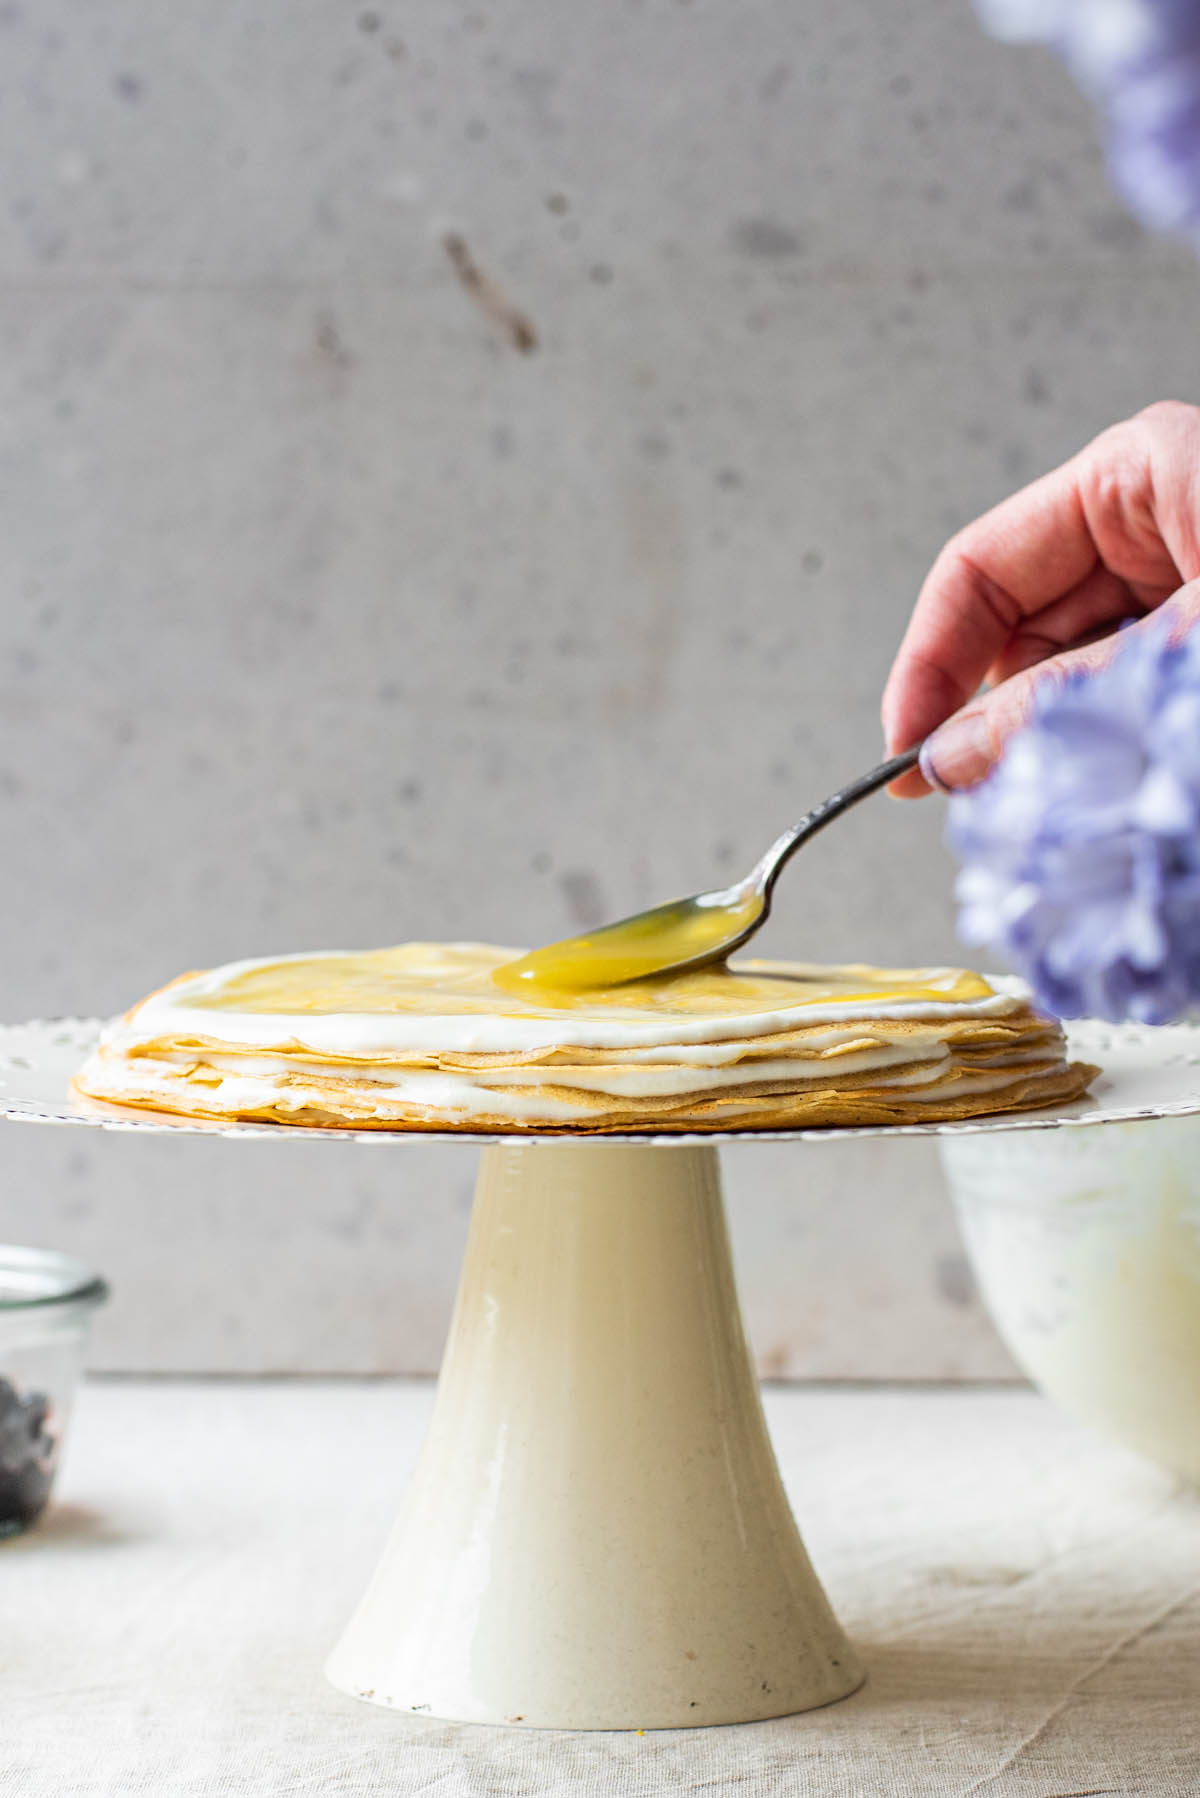 Spreading lemon curd onto layered crepes.